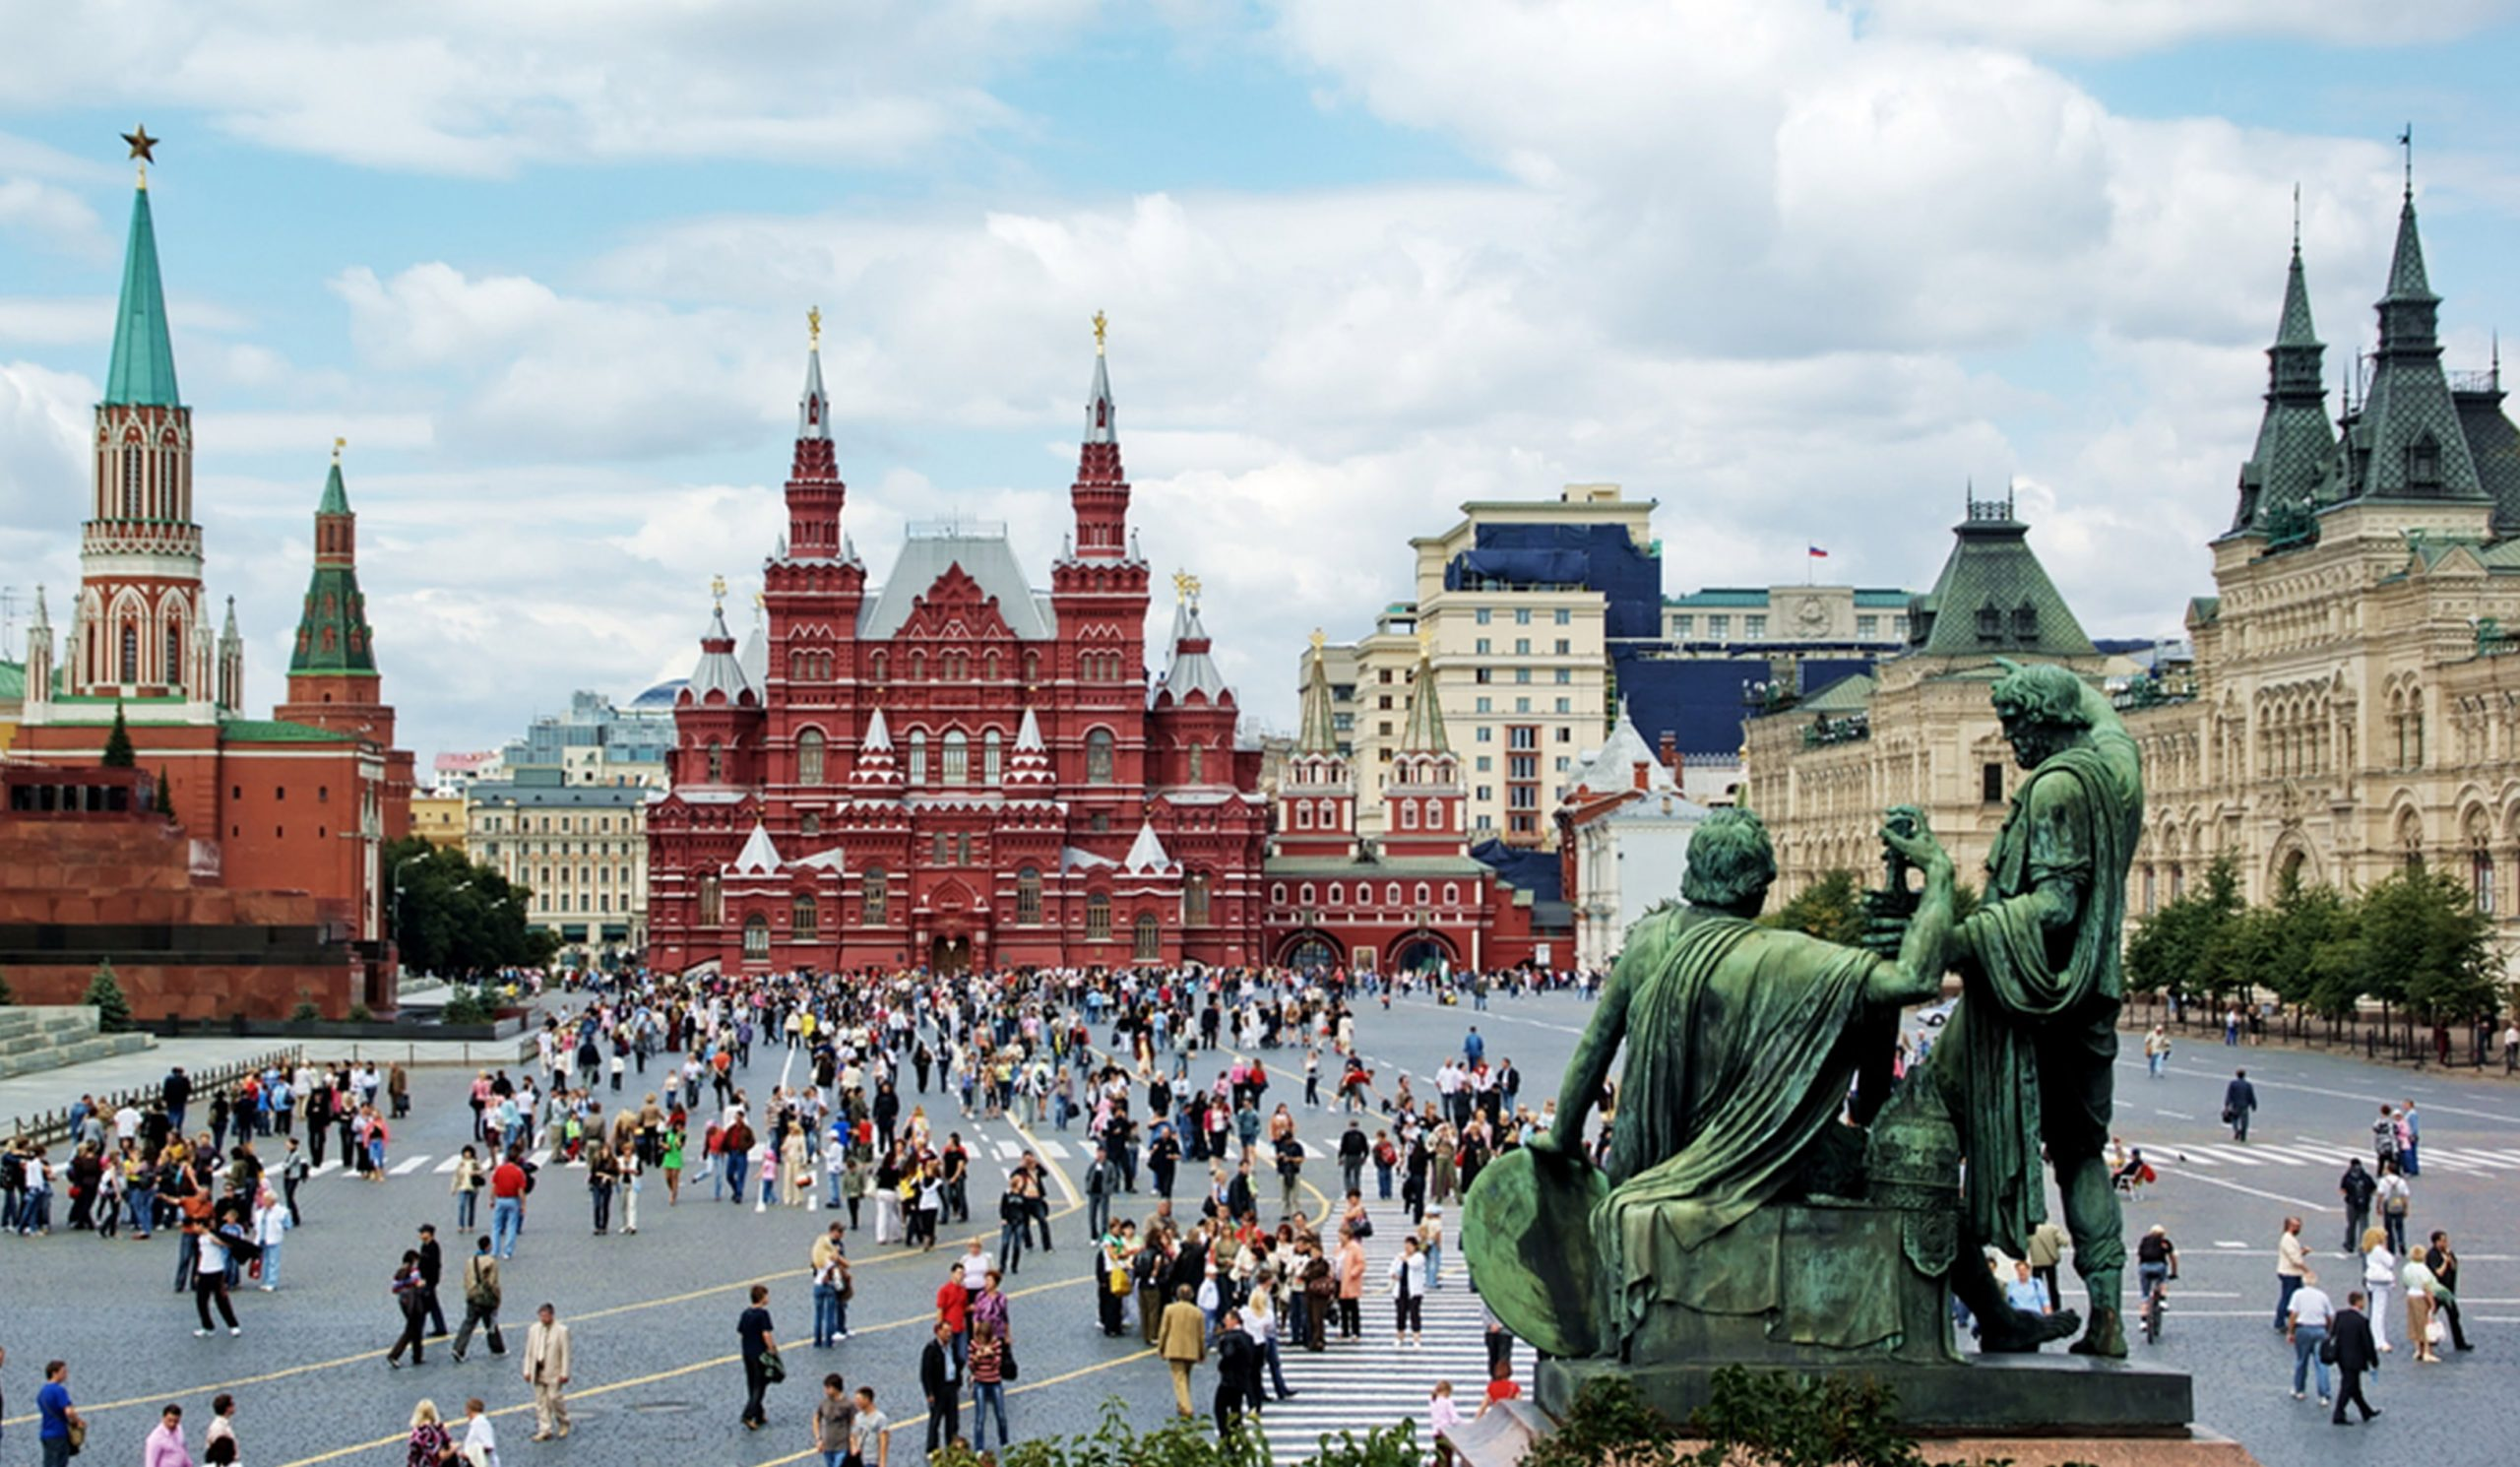 The Decree on adjustment measures for the legal status of foreign citizens and stateless persons in Russia in connection with the threat of COVID-19 spread